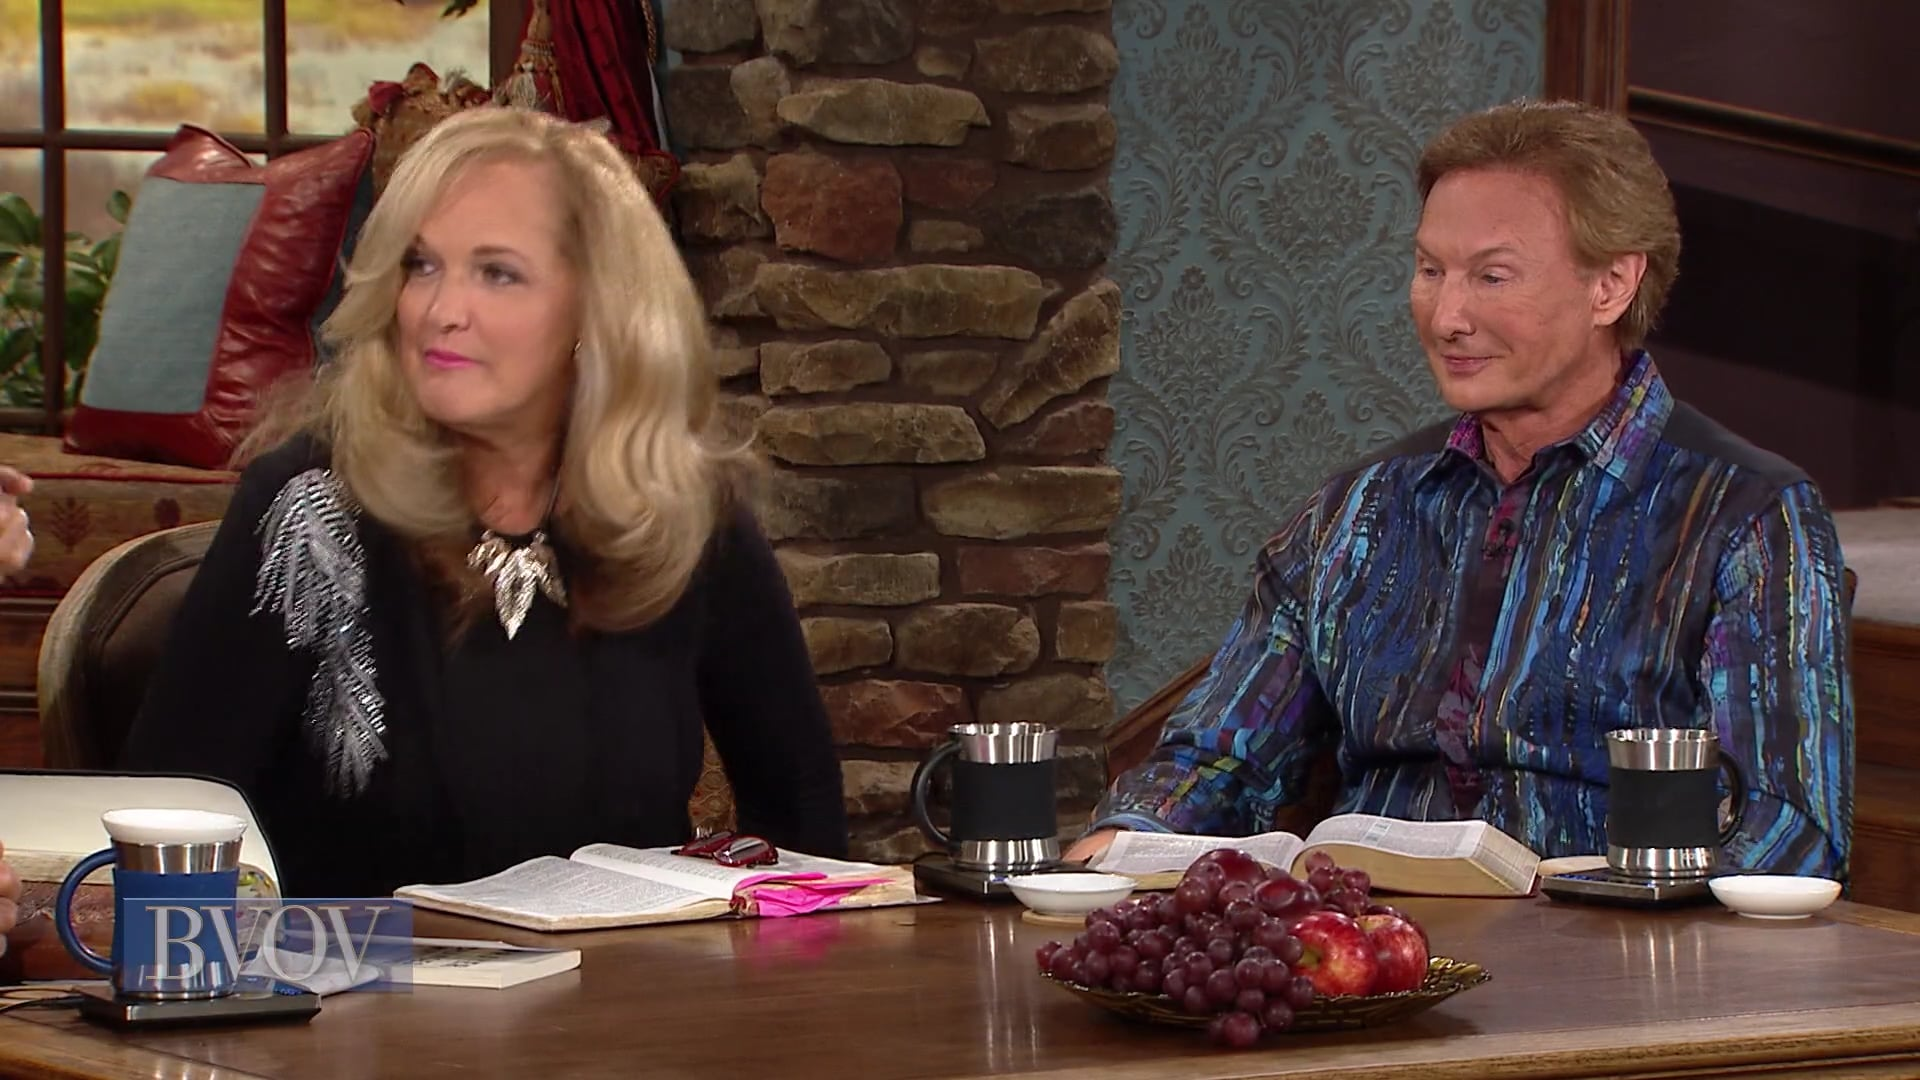 When God calls you to a fight, He intends for you to win! Watch Believer's Voice of Victory as Kenneth Copeland and Dr. Don and Mary Colbert discuss Mary's calling to pray over the 2016 election and the spiritual battle that ensued. Learn how to act on prayer that leads you to triumph when you are obedient to Him!